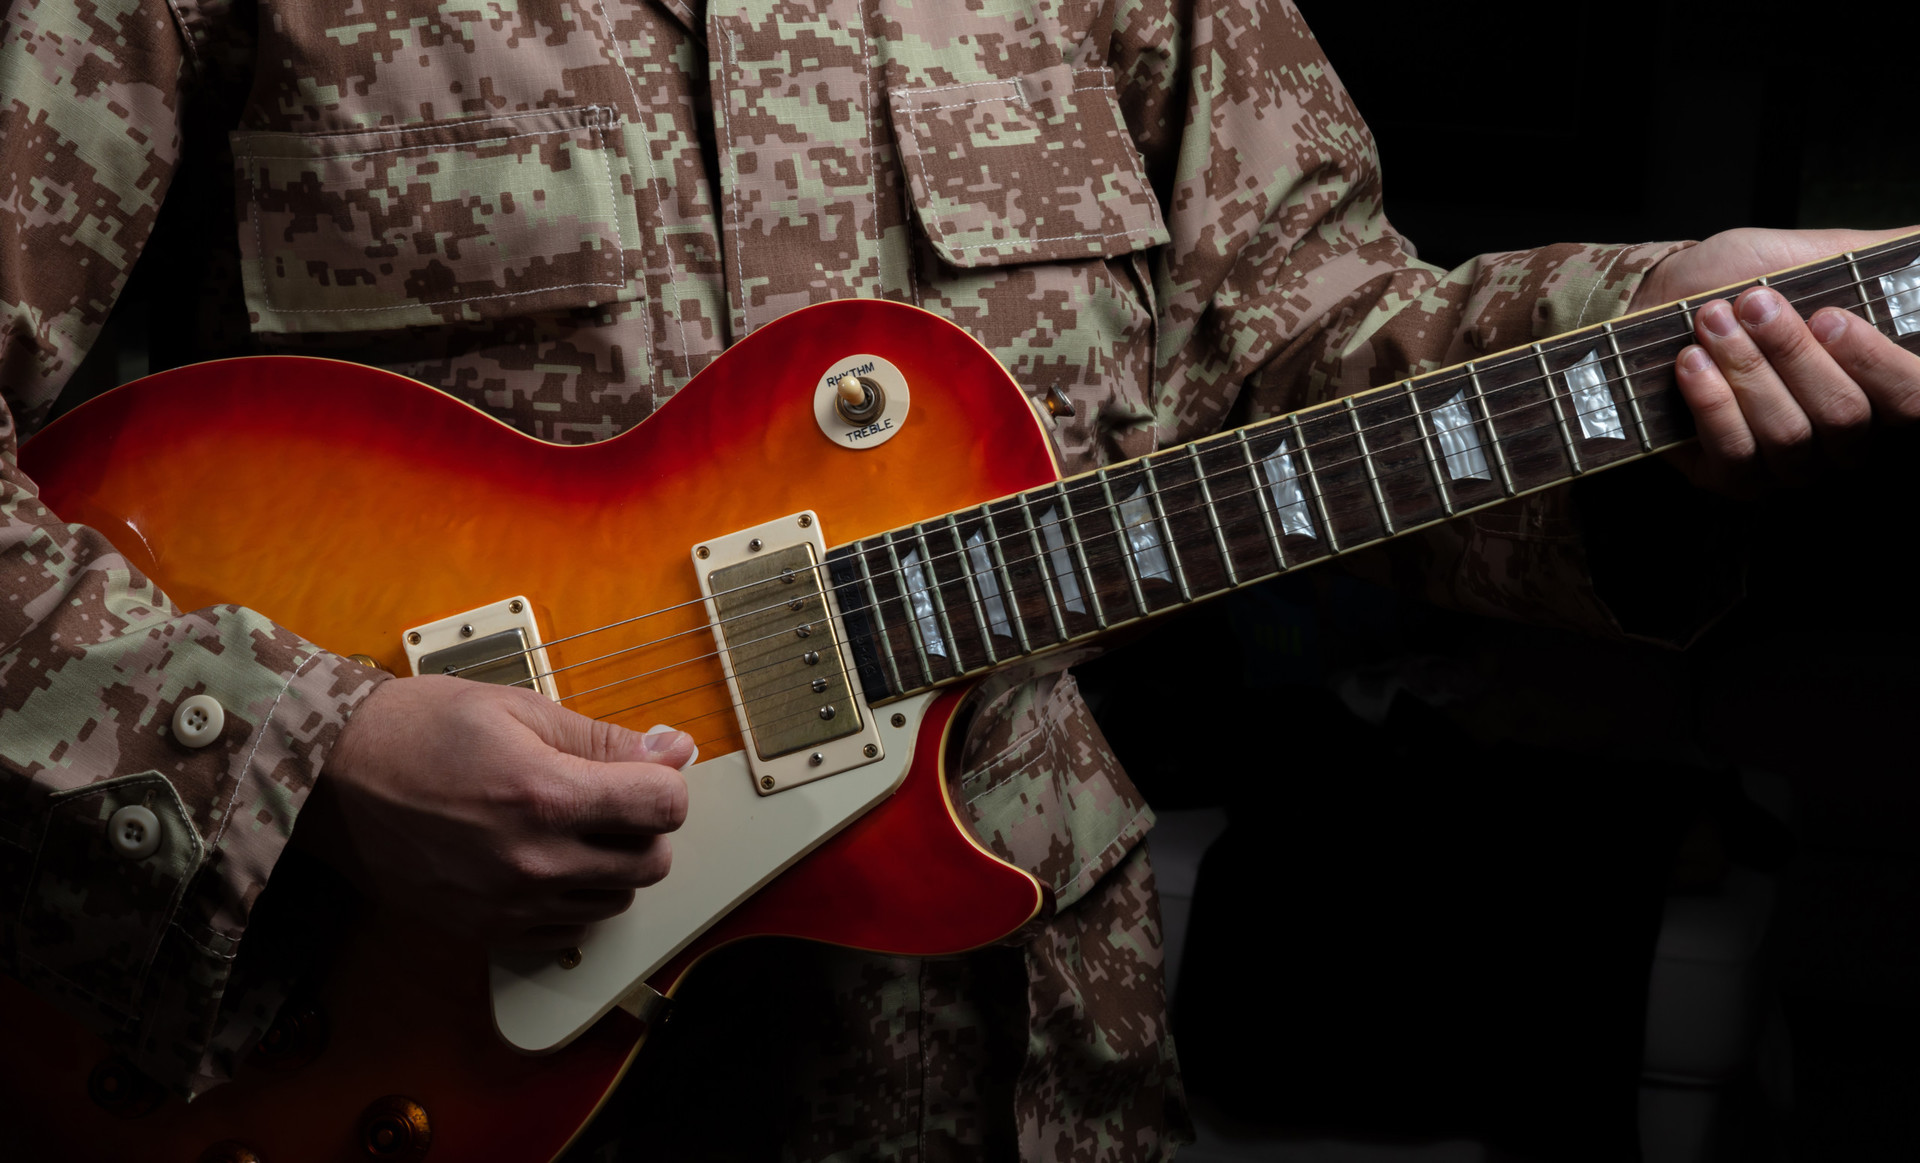 Soldier in uniform playing guitar